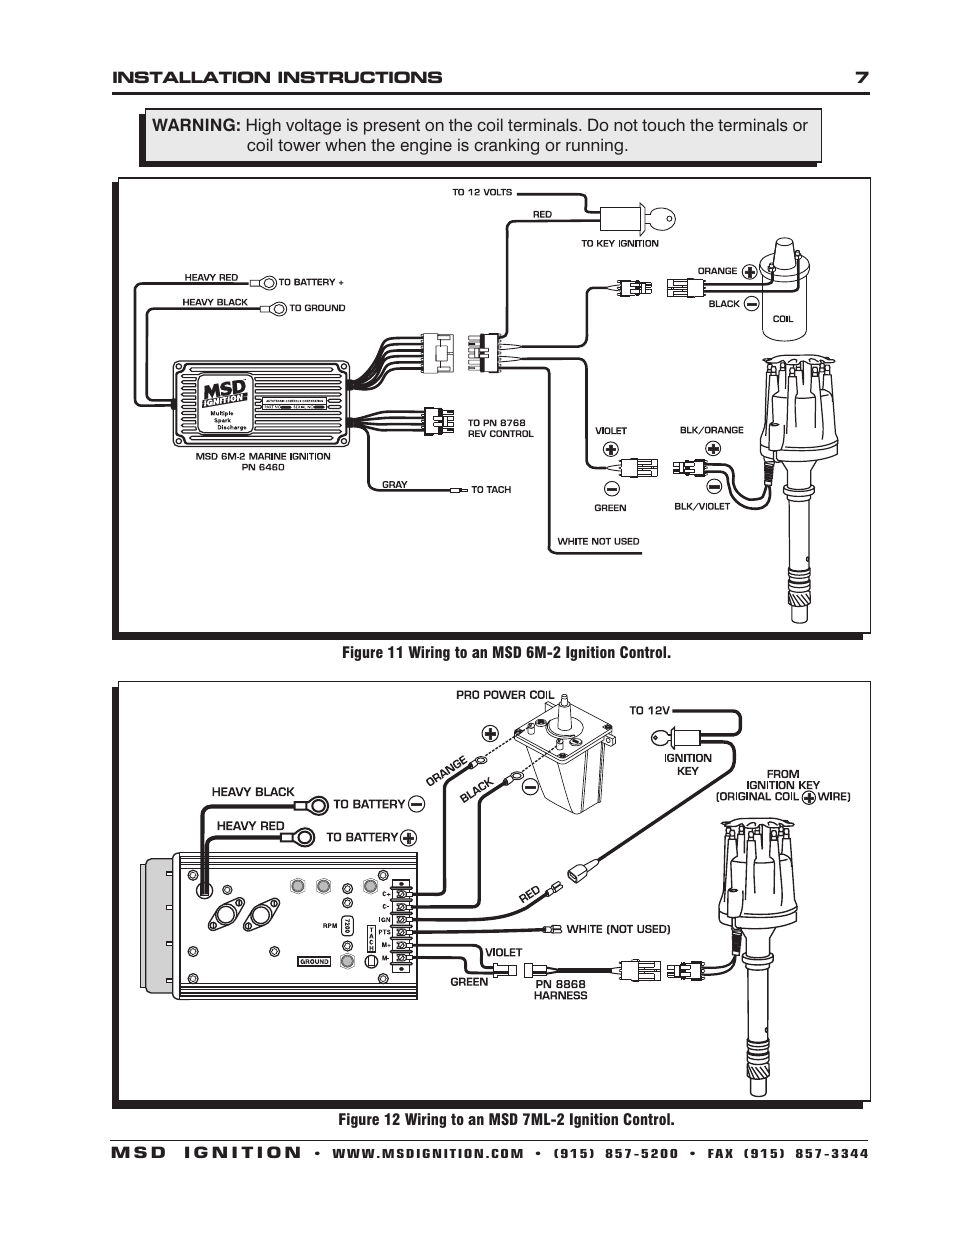 WRG-7488] Msd Wiring Diagram 6m 2 on